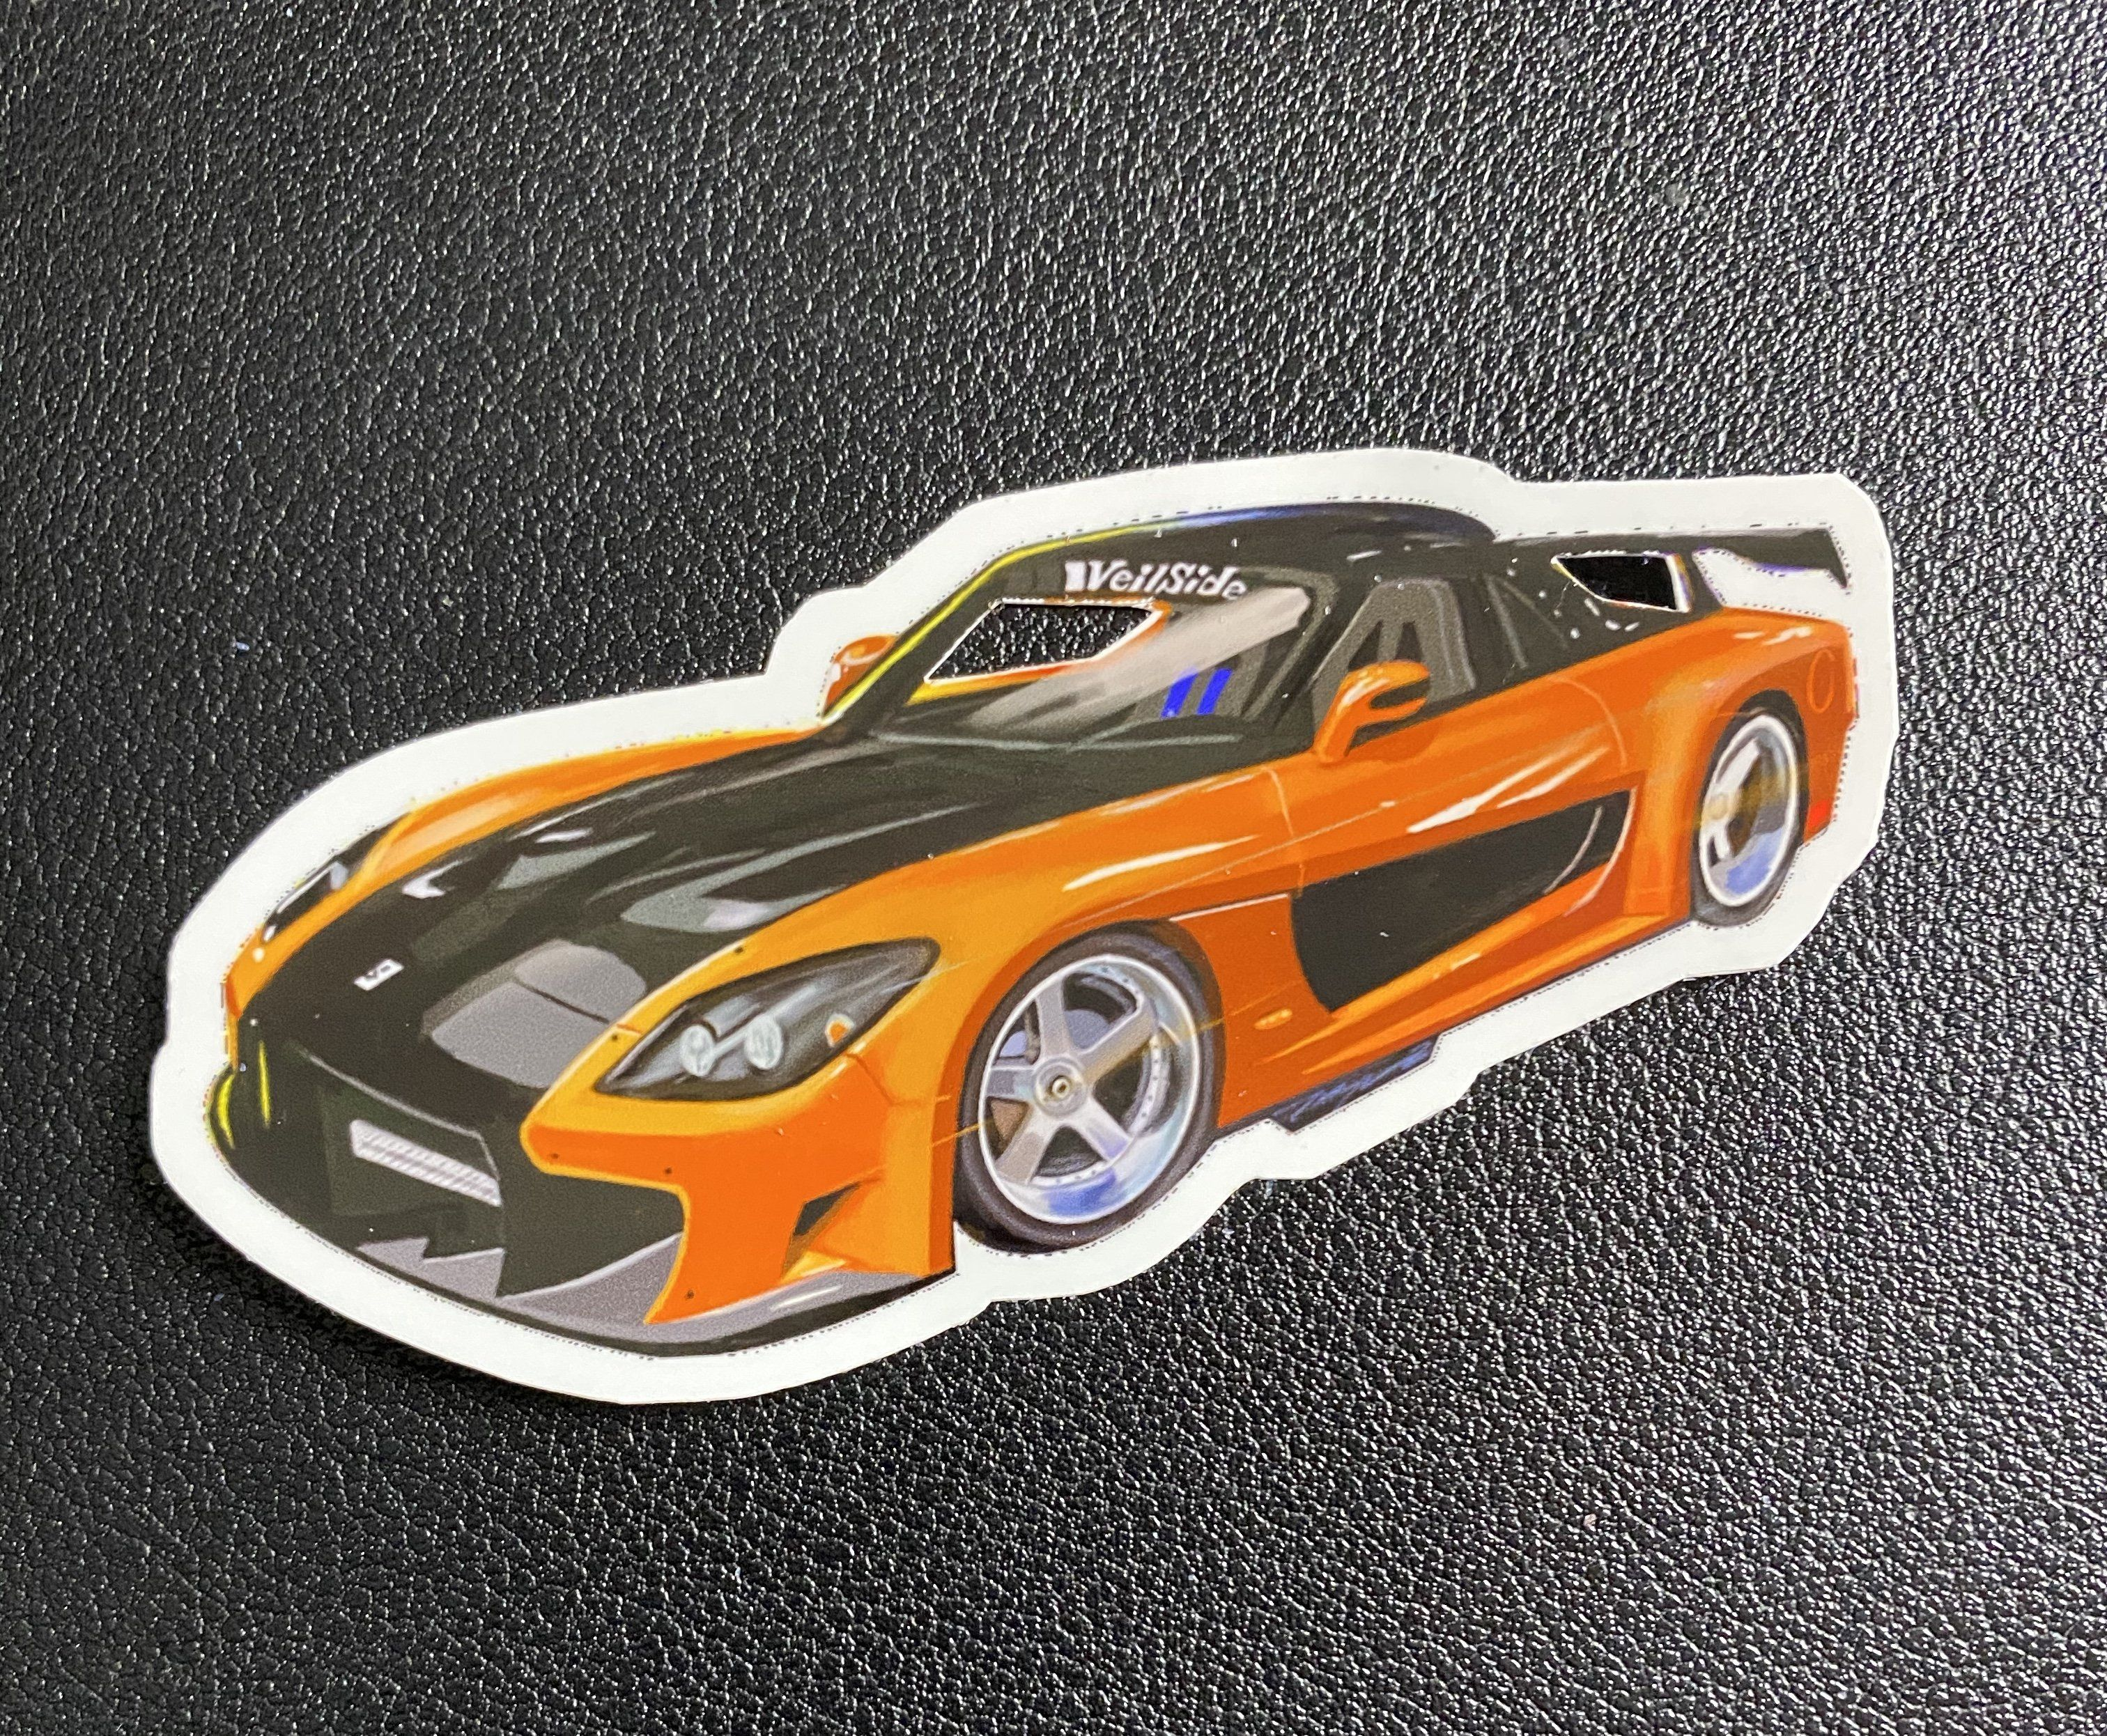 The Fast And Furious Han S Mazda Rx 7 Sticker Mazda Rx7 Mazda Fast And Furious [ 2492 x 3024 Pixel ]